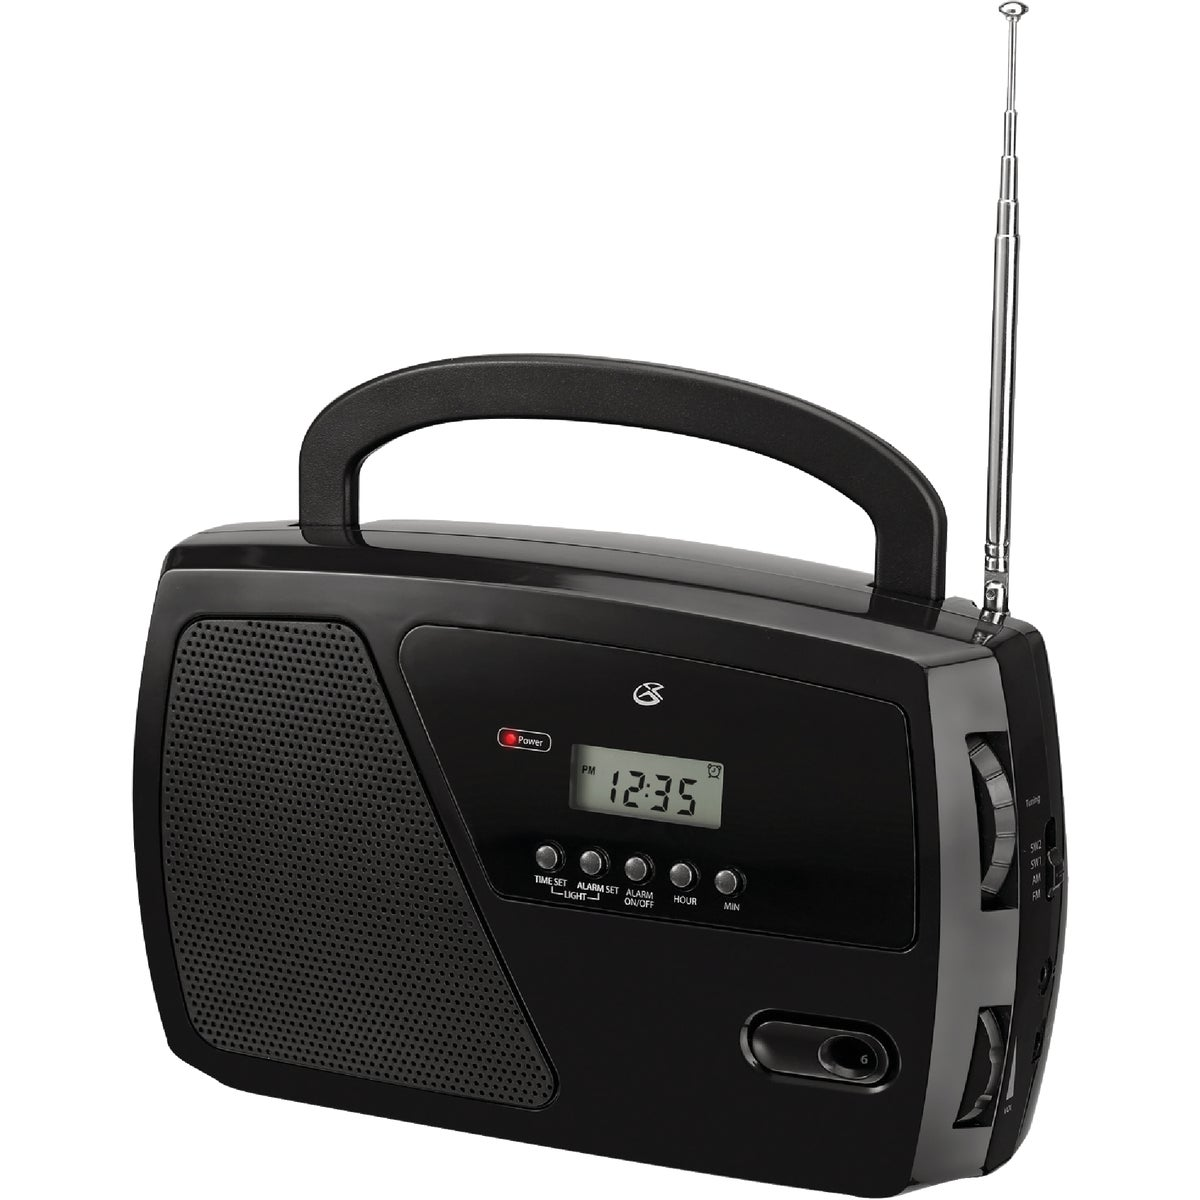 AM/FM SHORTWAVE RADIO - R633B by Dpi Inc